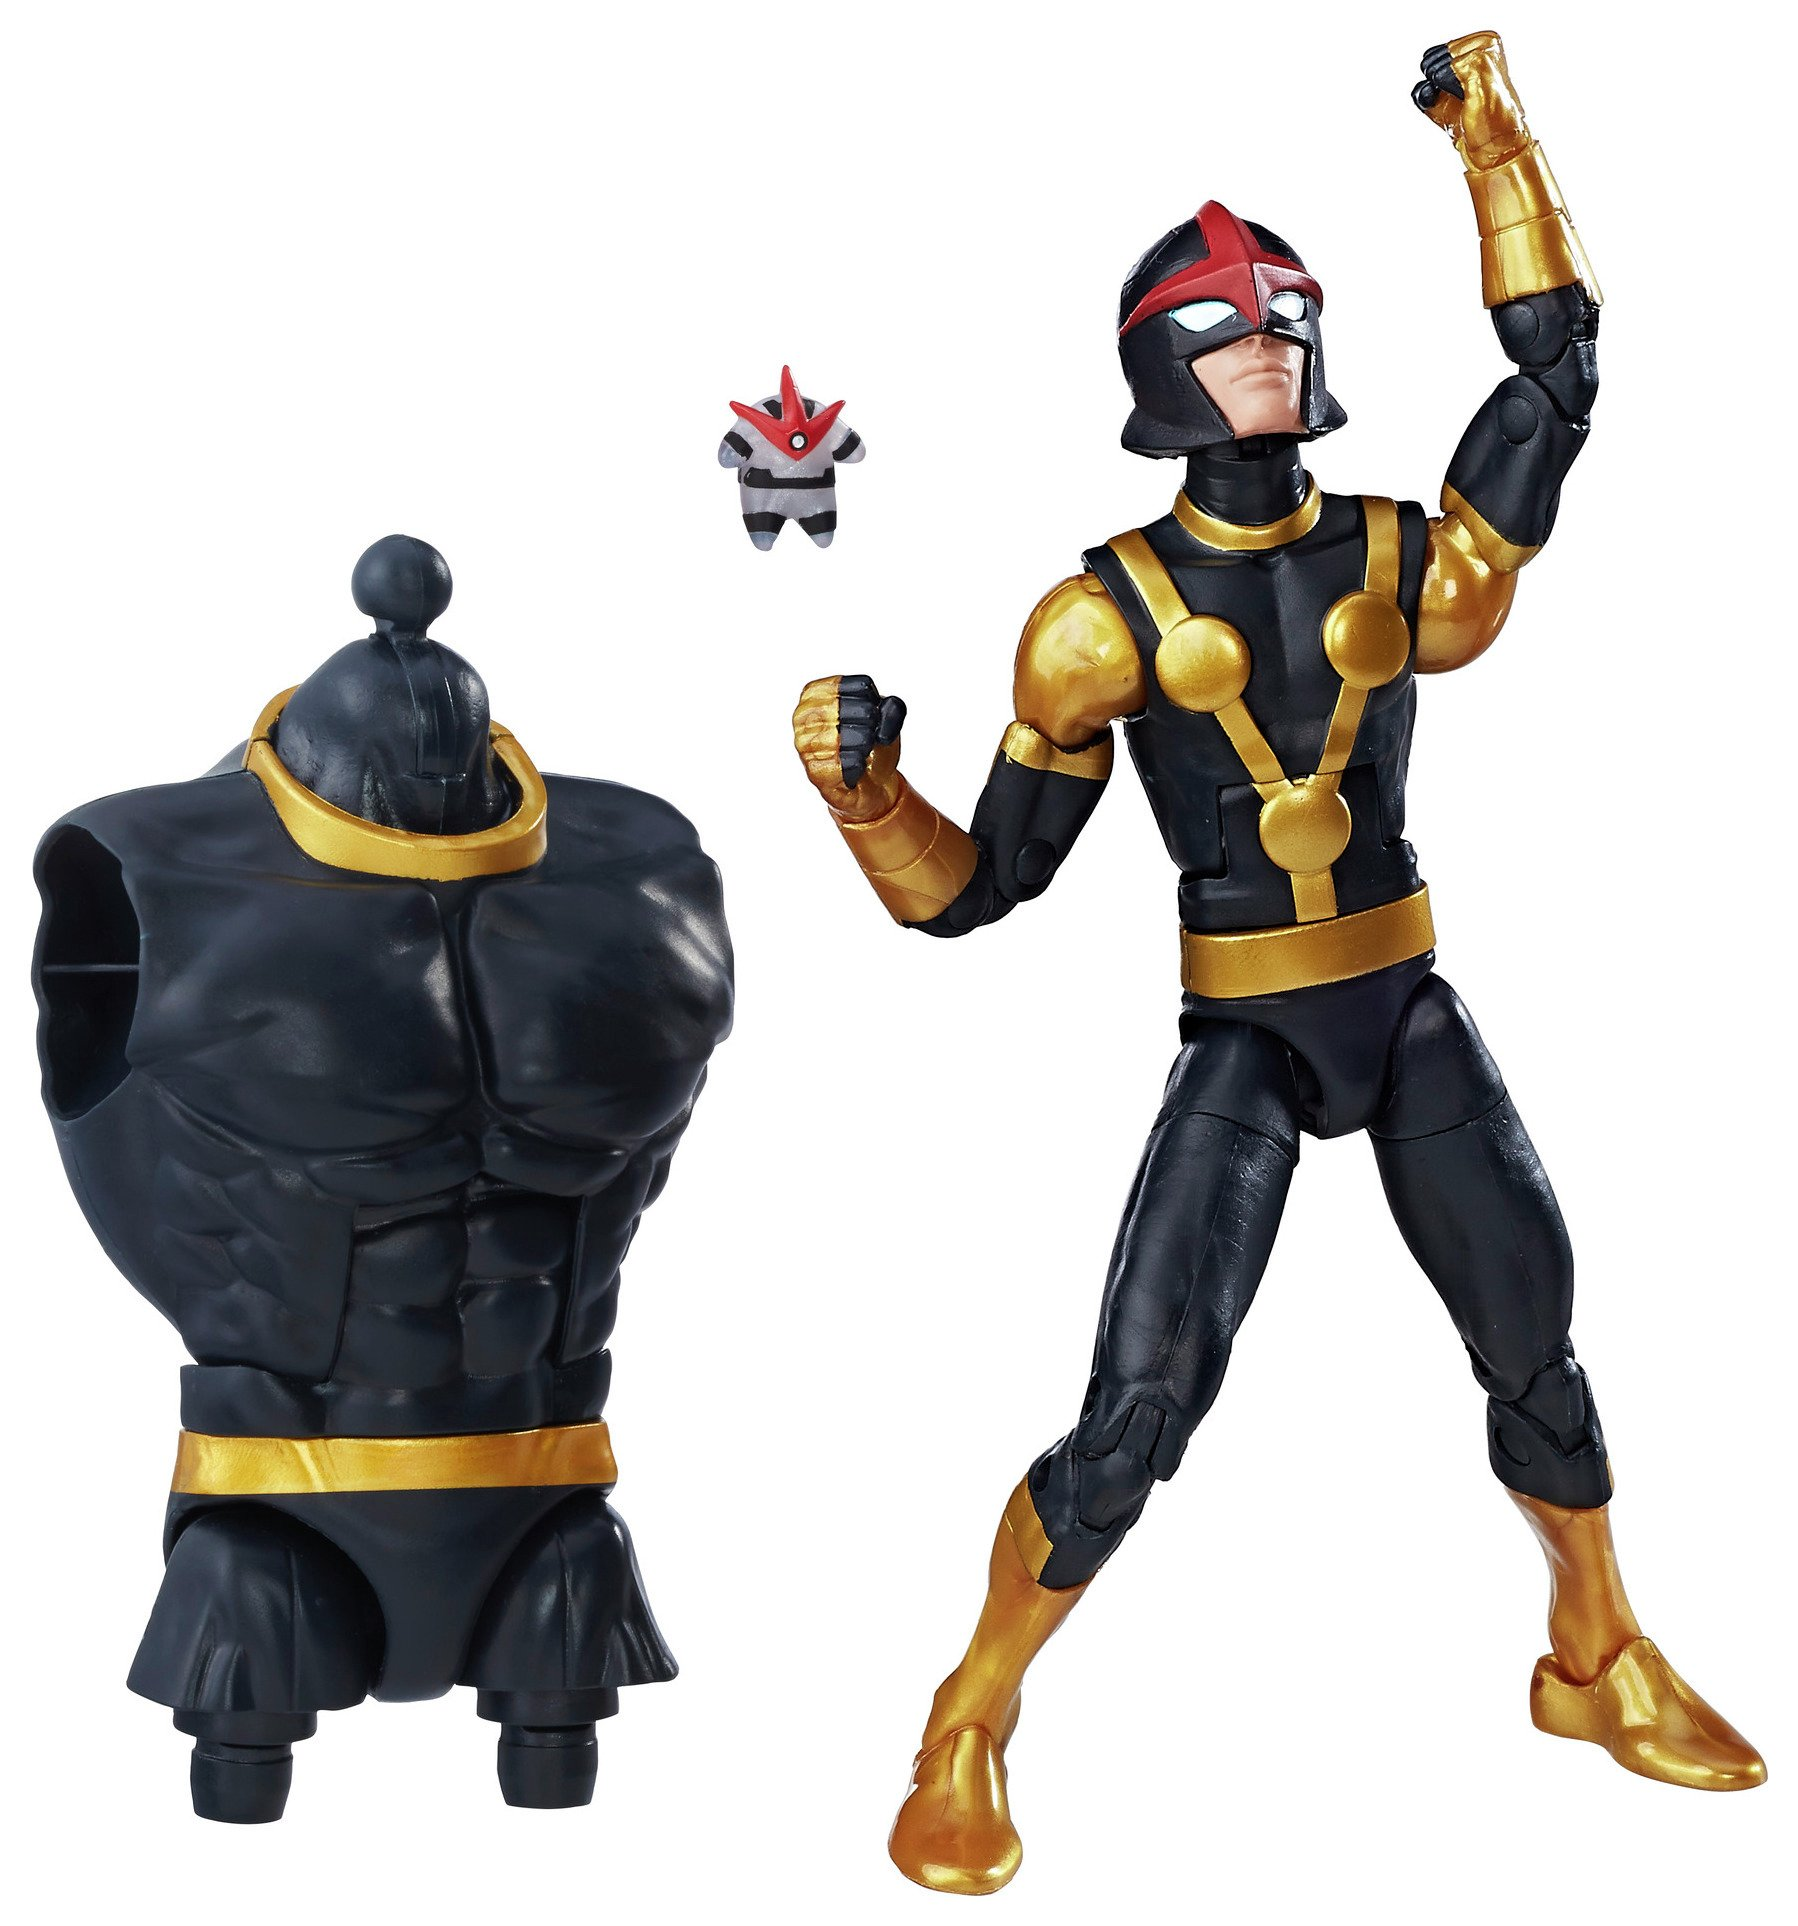 Image of Marvel Guardians of the Galaxy 6-inch Legends Nova